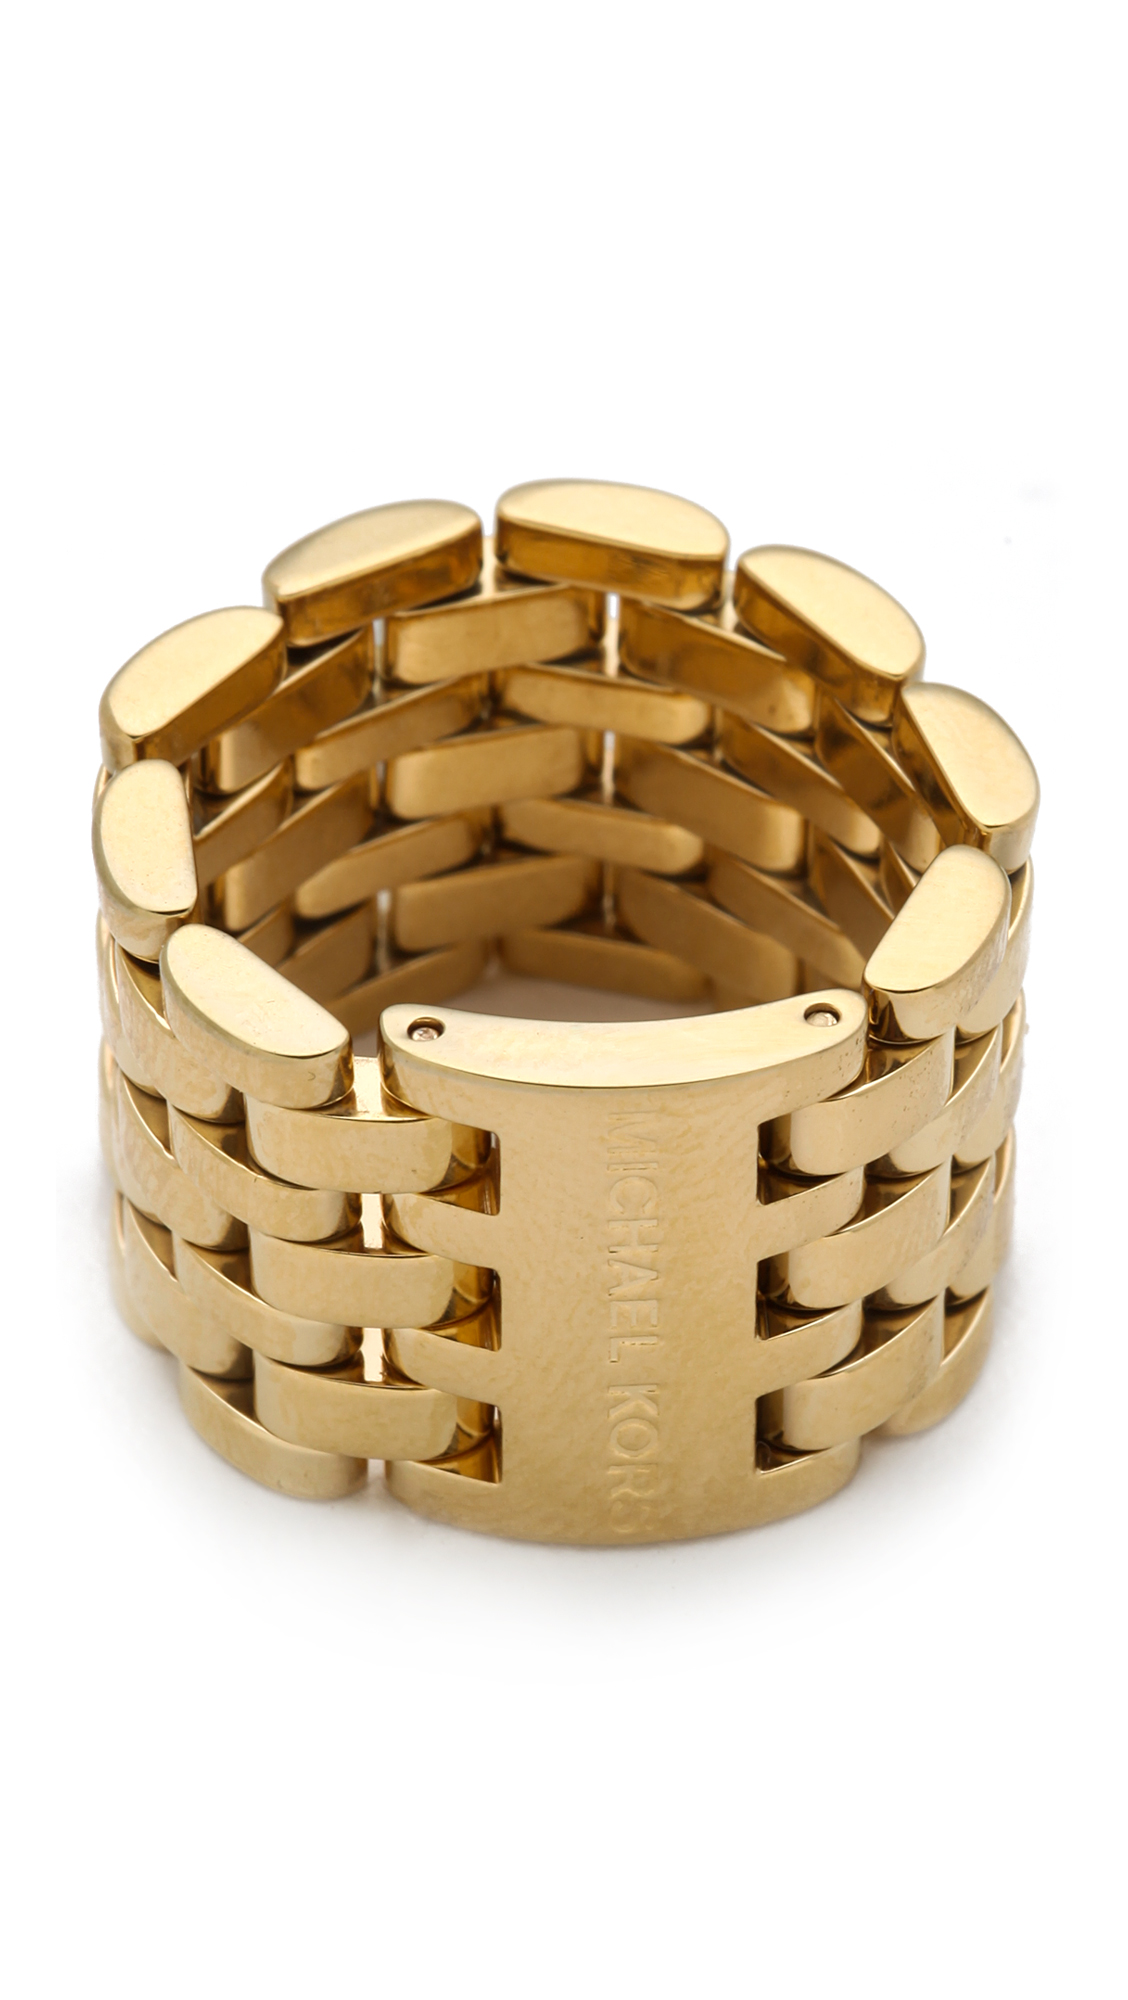 Michael Kors Gold Plated Ring